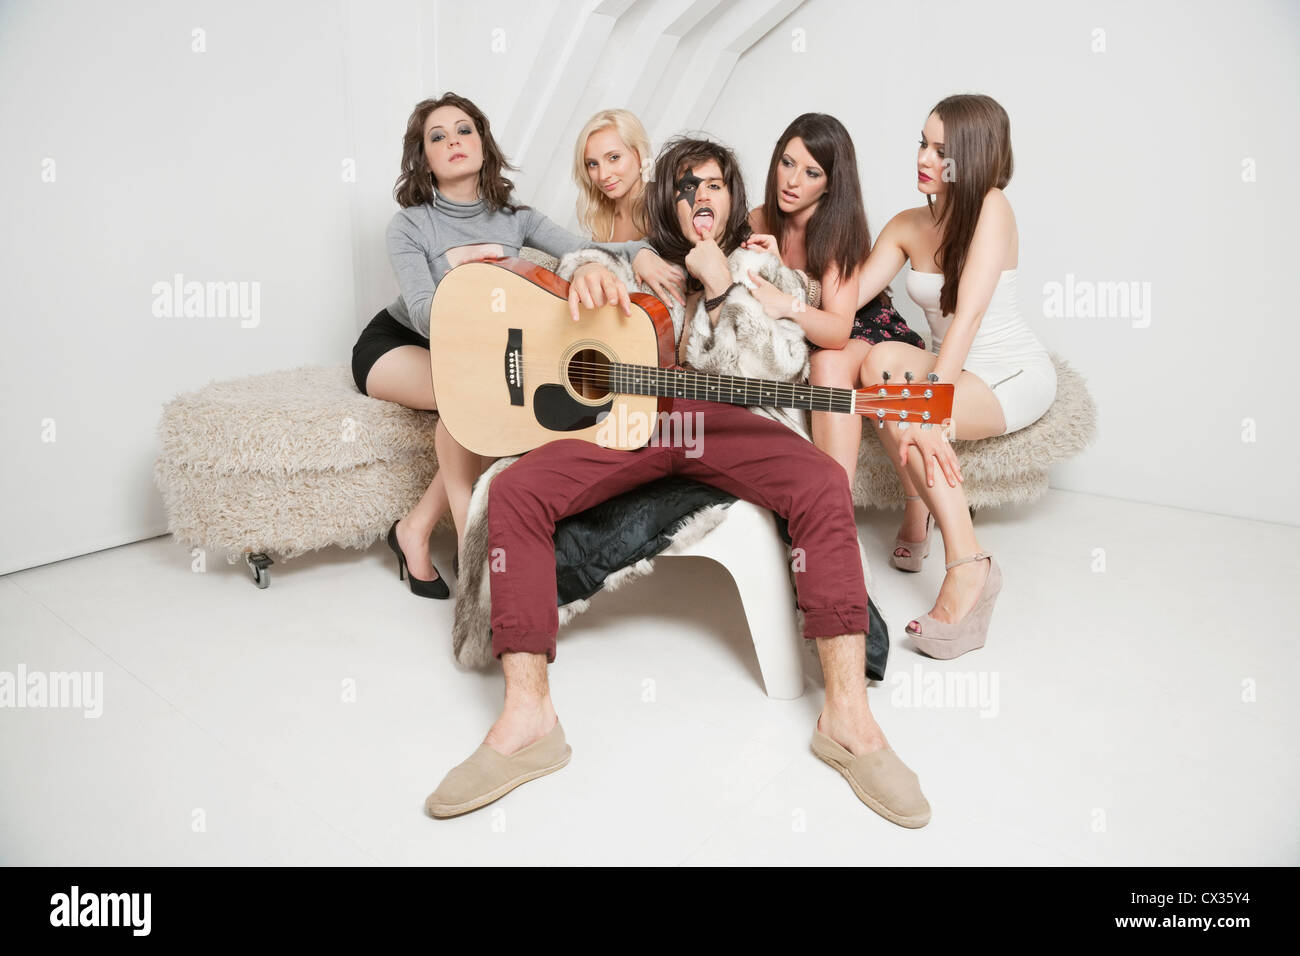 Portrait of young male guitarist sitting amid young female friends - Stock Image